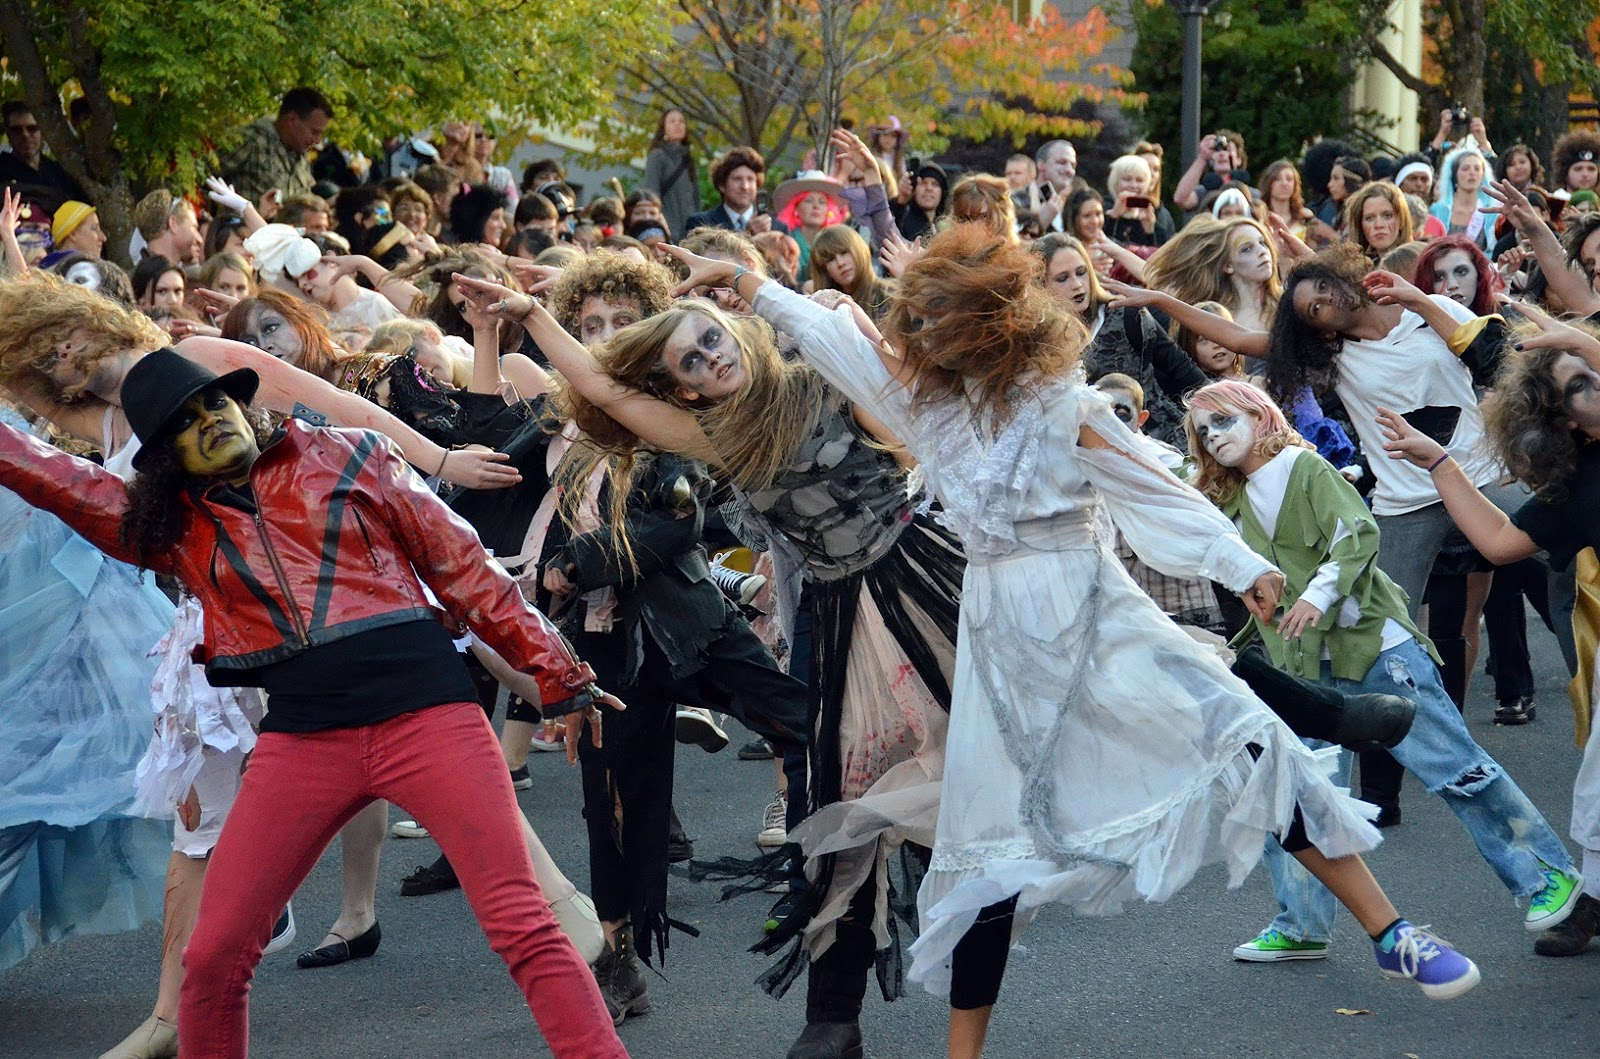 Mistress of the Mix: When Halloween Gets A Little Too Thrilling ...